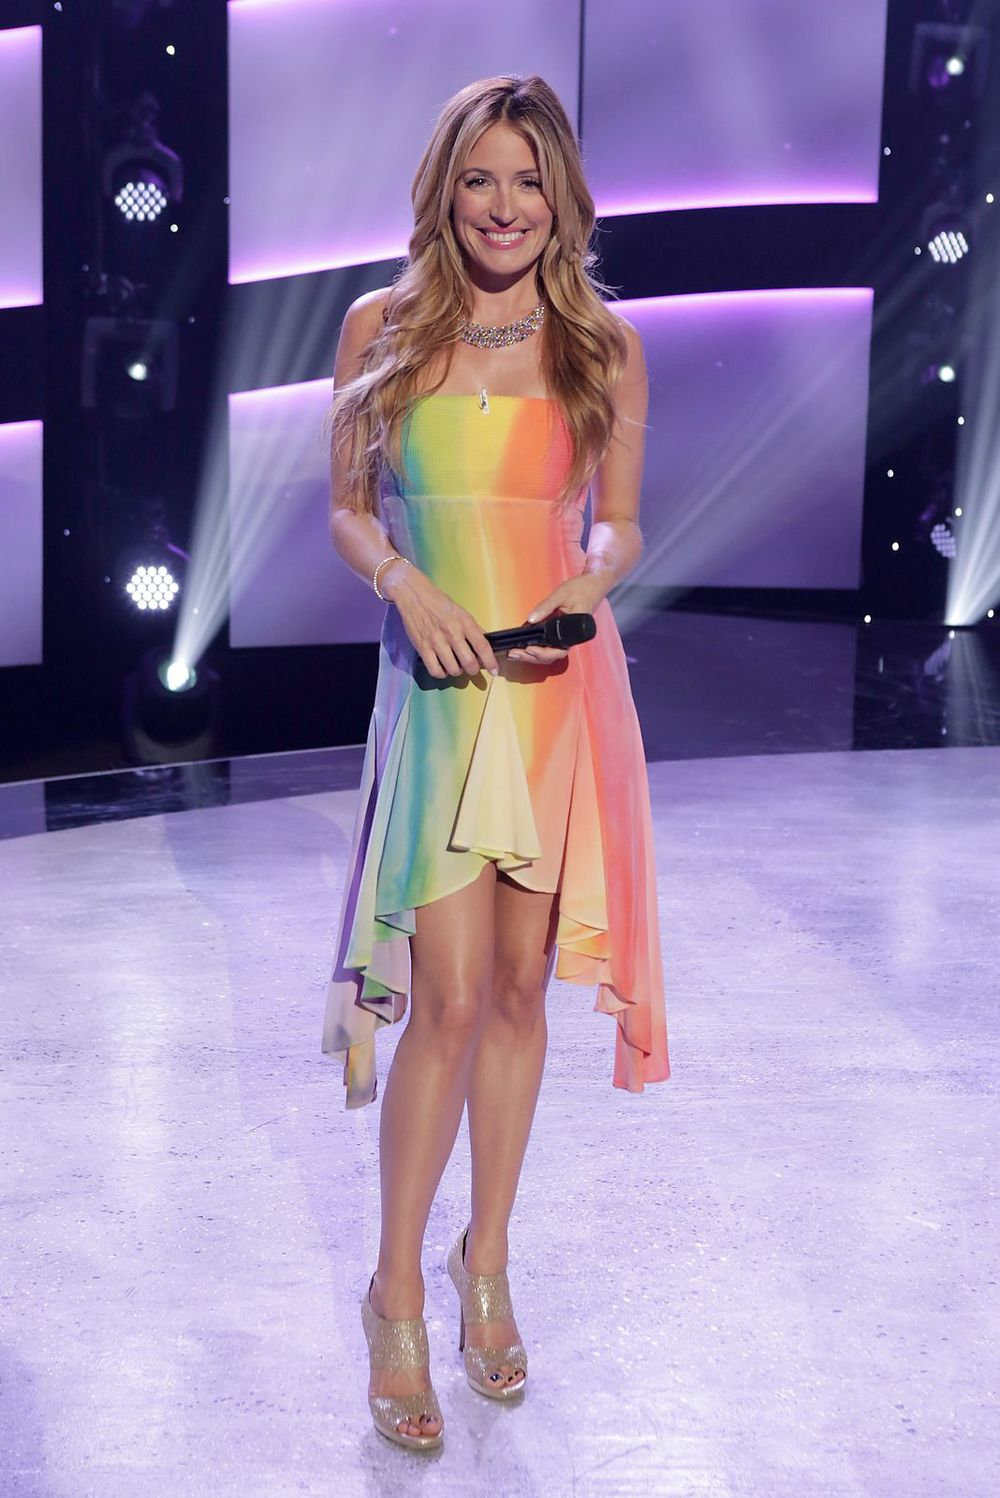 Cat Deeley    Dress: Matthew Williamson   Shoes: Jimmy Choo   Jewelry: XIV Karats